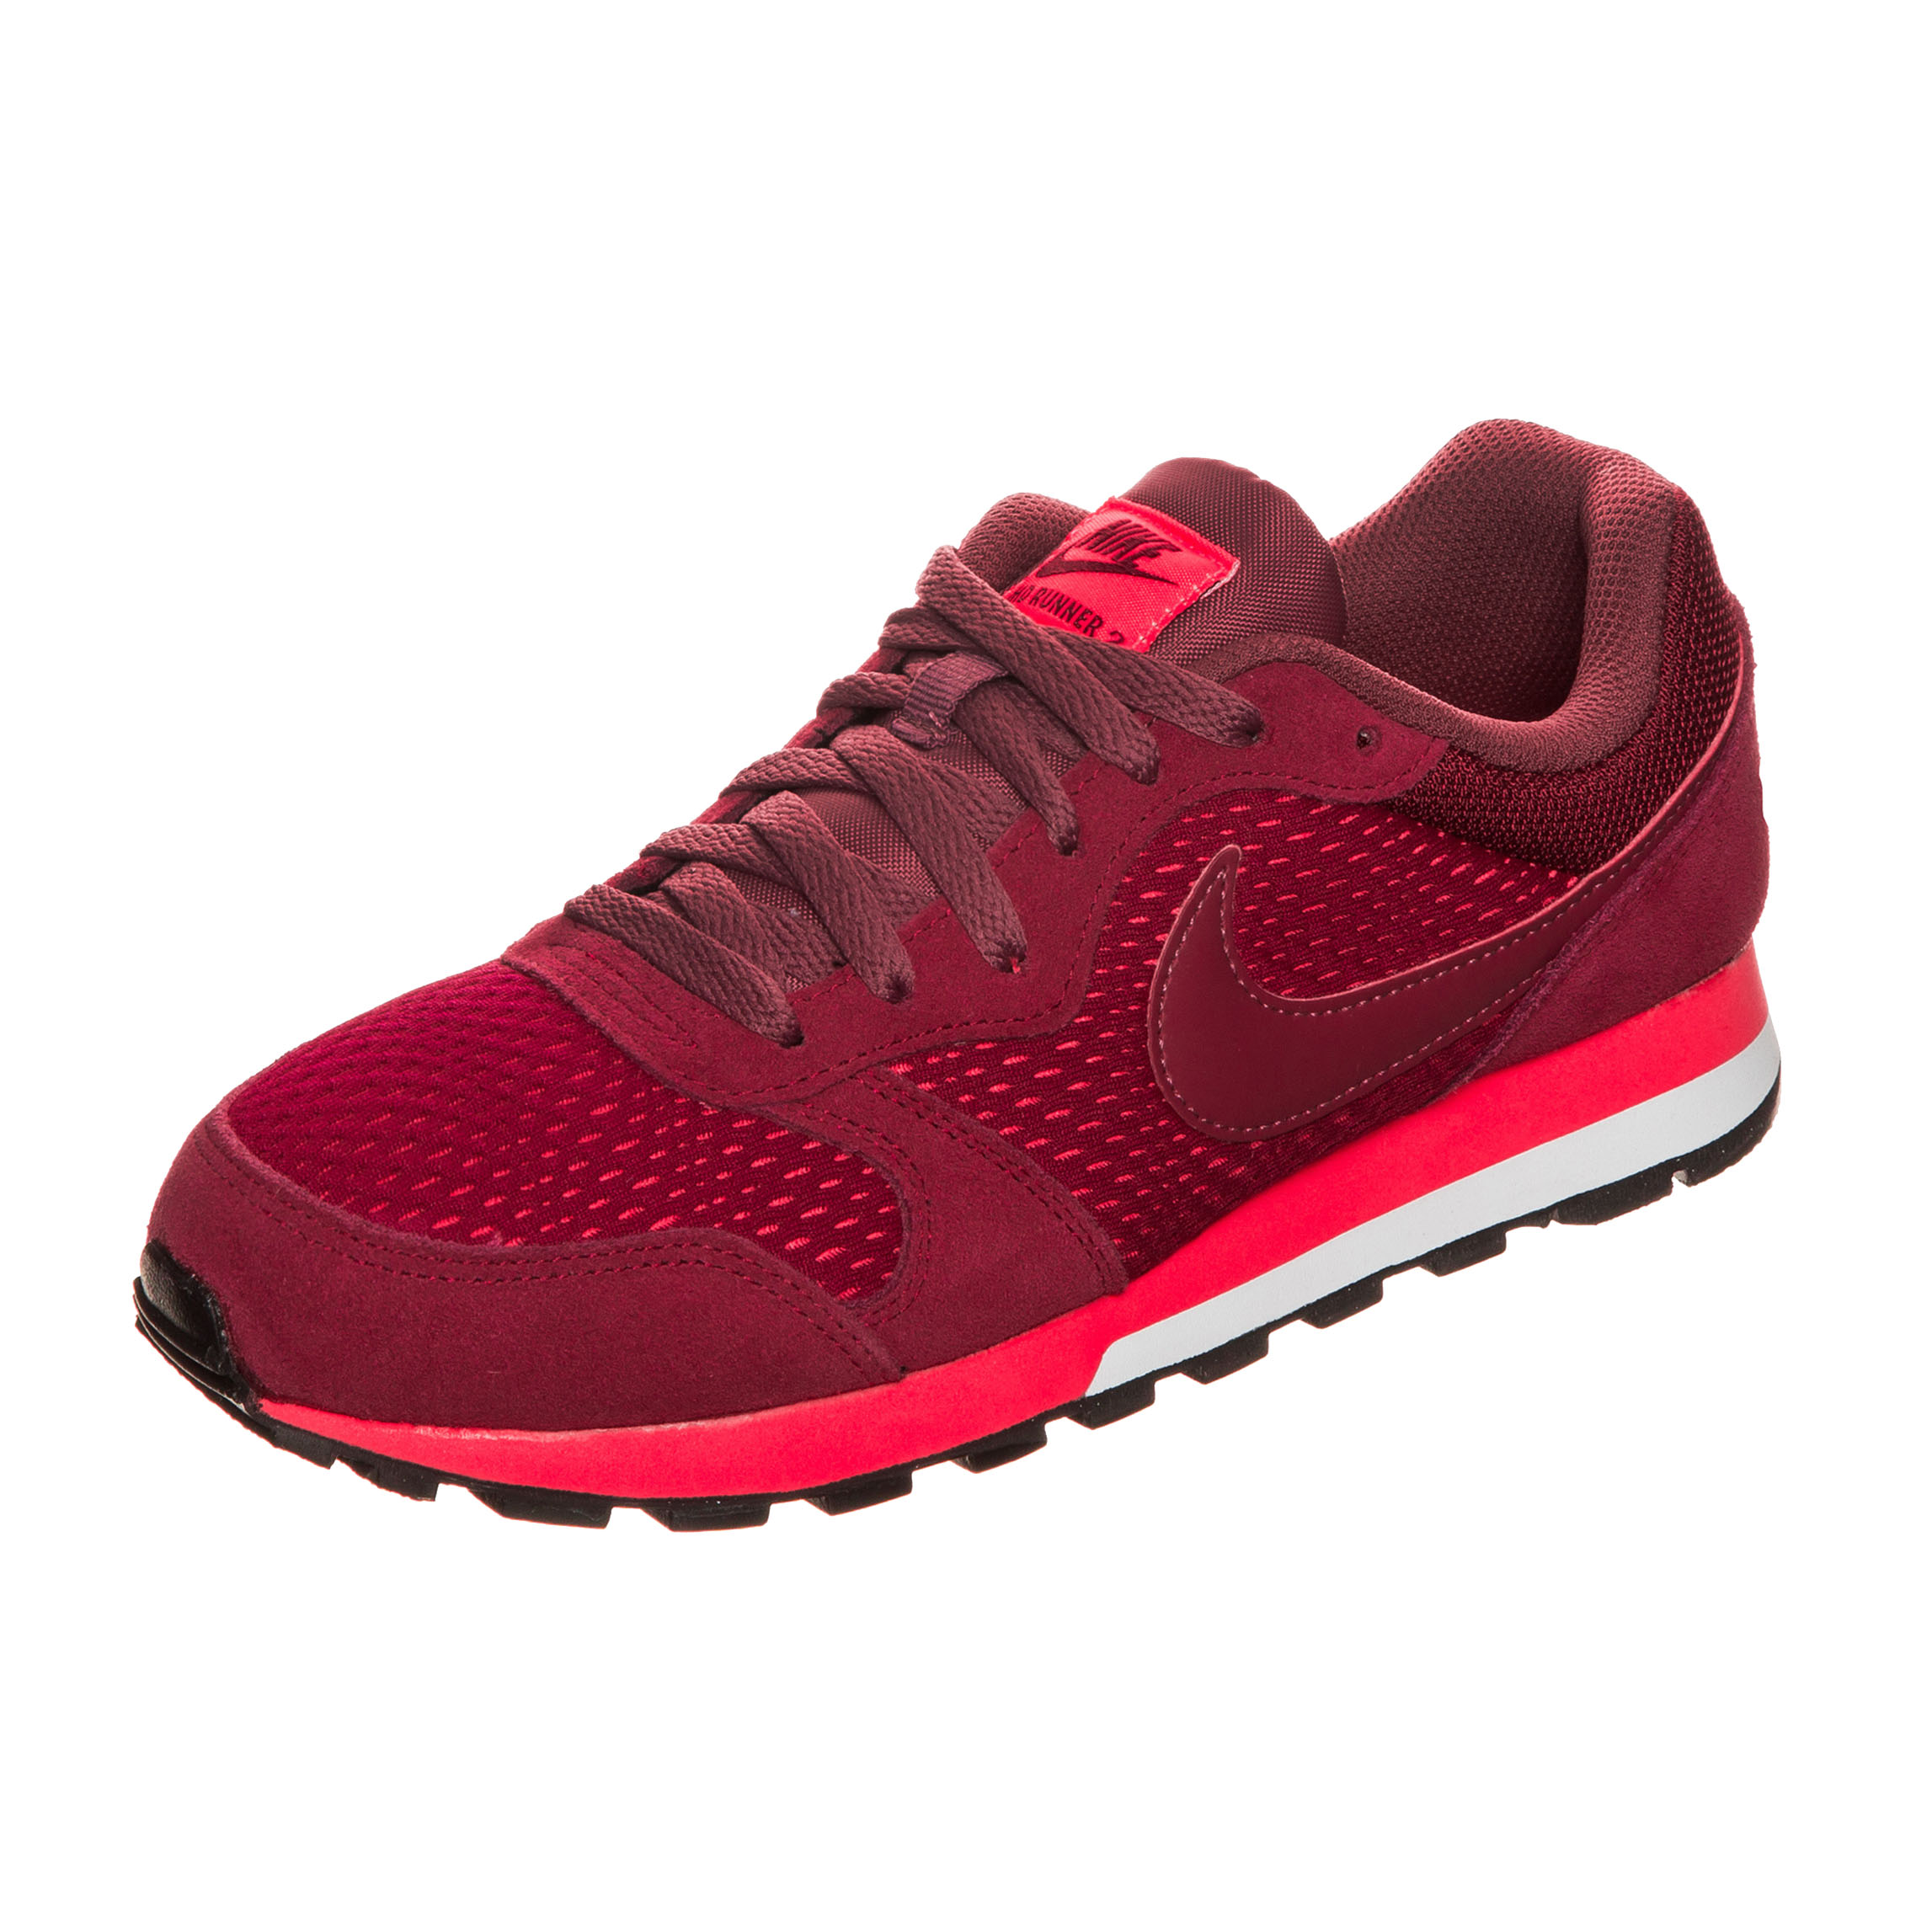 9e9fbb43541a9 Nike Md Runner 2 Wmns 601 - Leisure   Sneakers